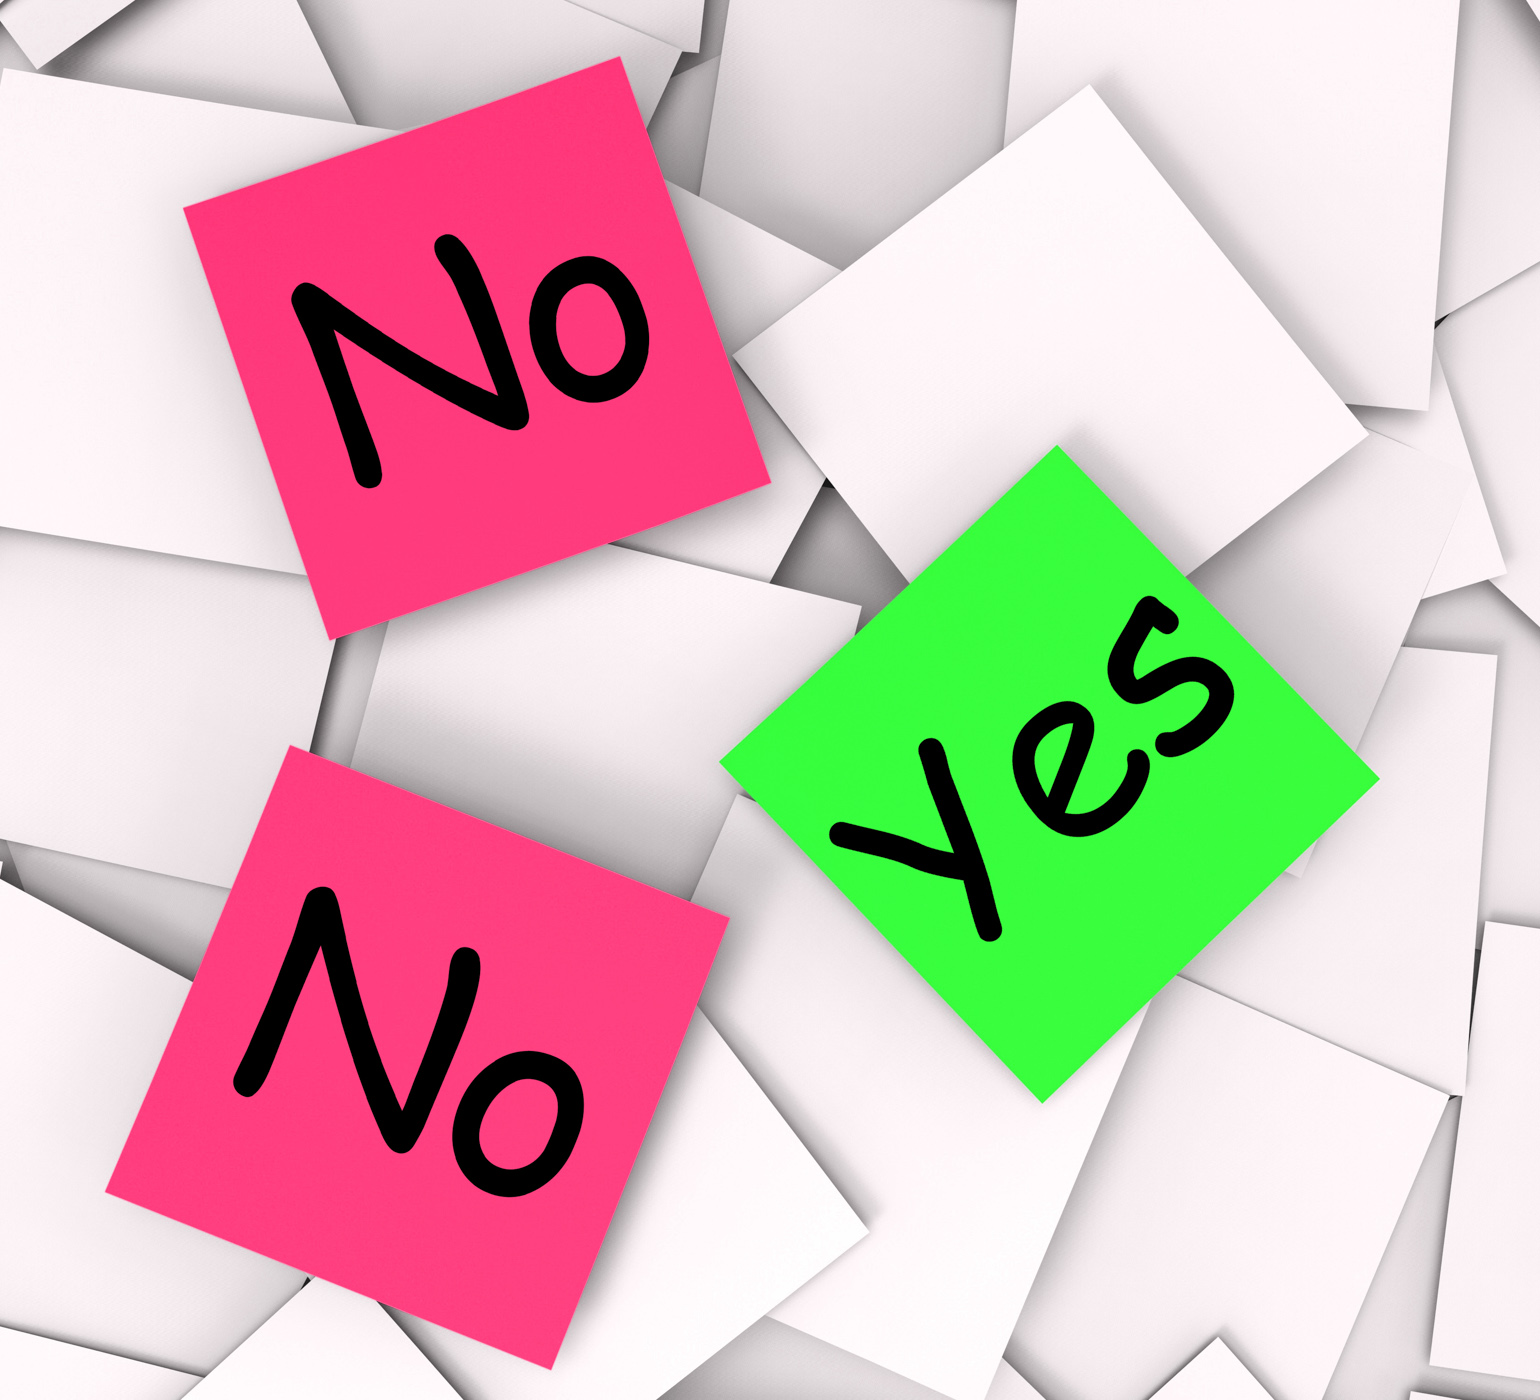 Yes no post-it notes mean answers affirmative or negative photo